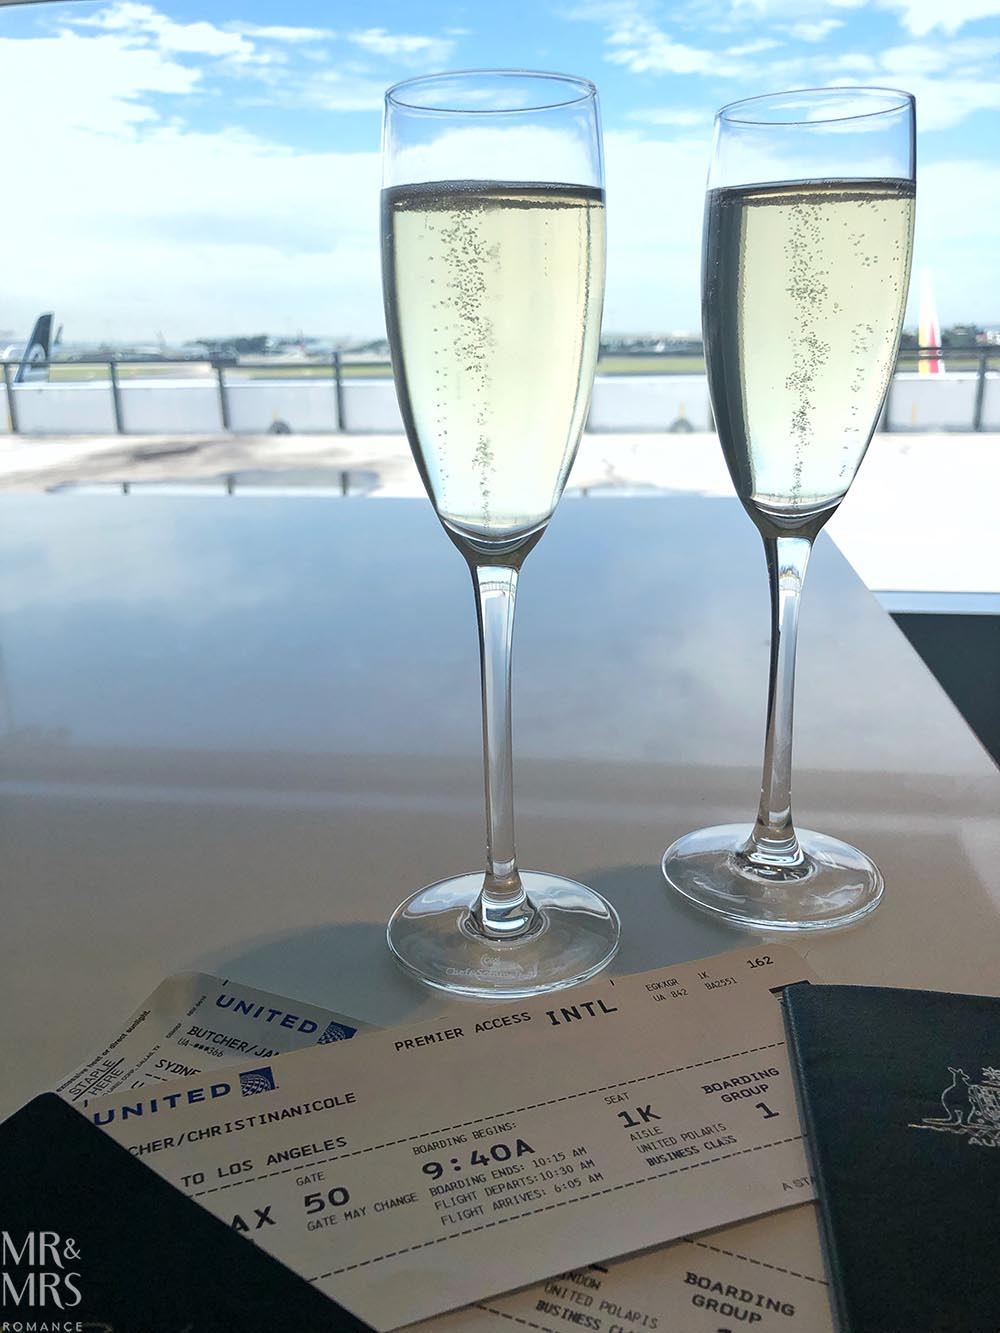 United Airlines business class United Polaris review - Champagne